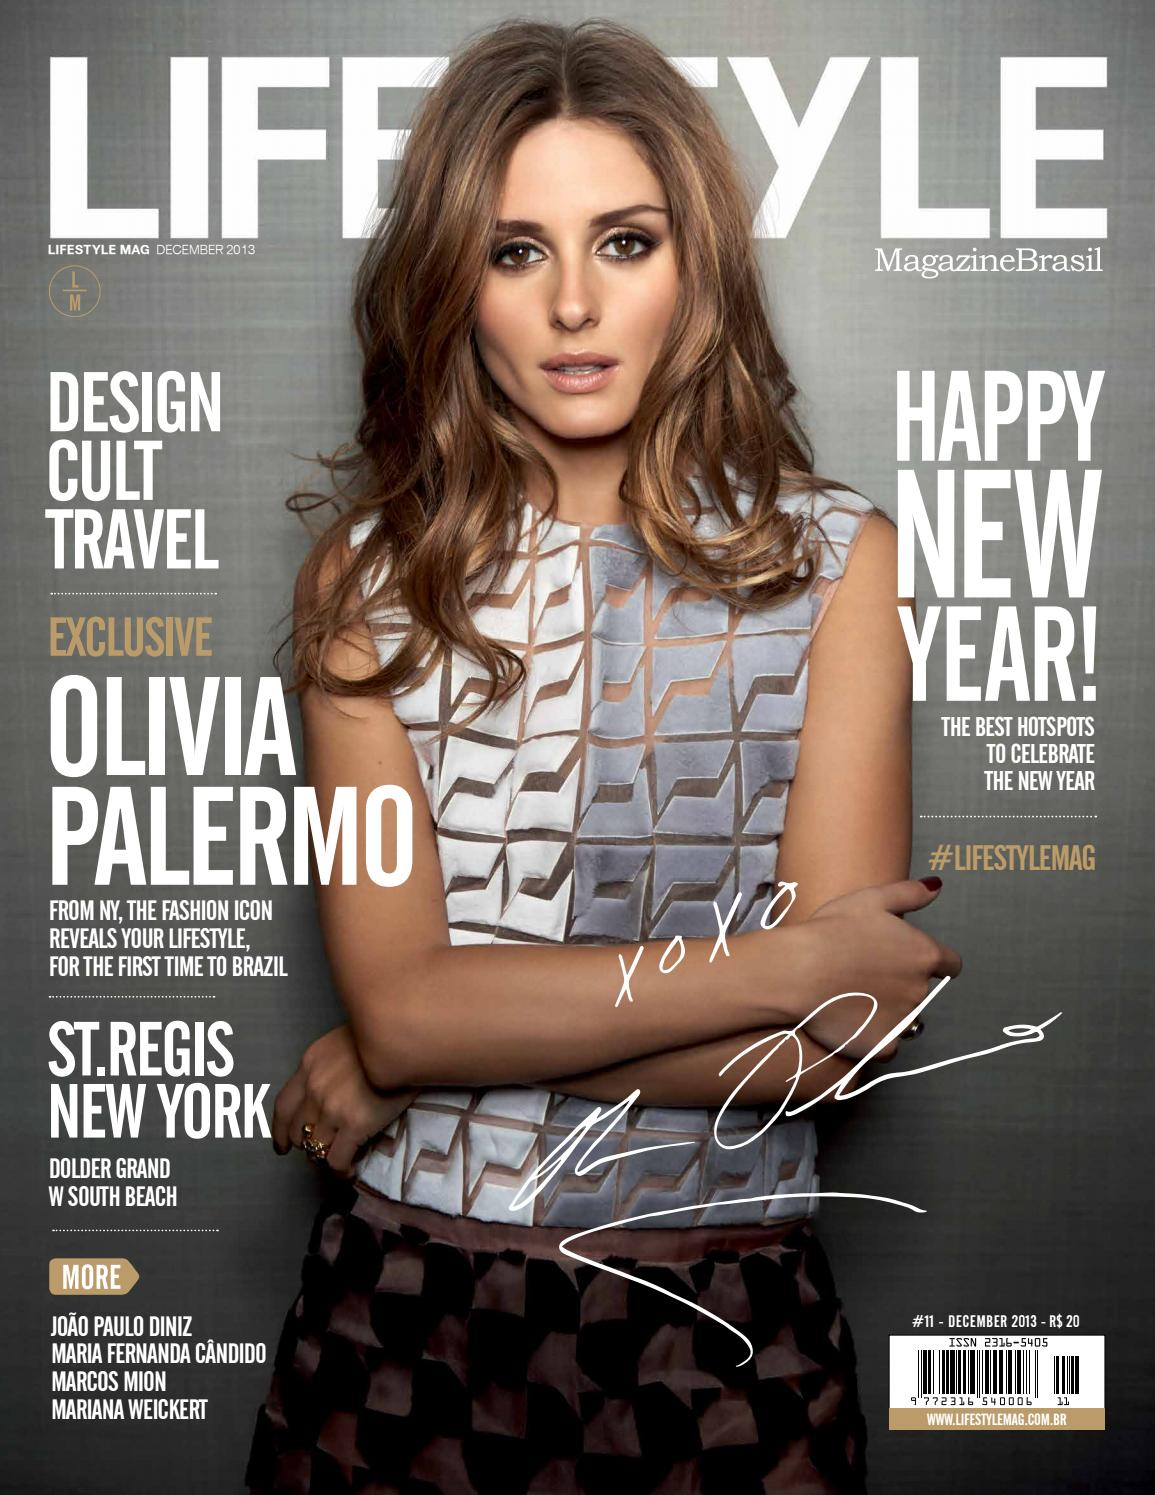 Olivia Palermo - Published by Lifestylemag #11 - follow @byclaur by